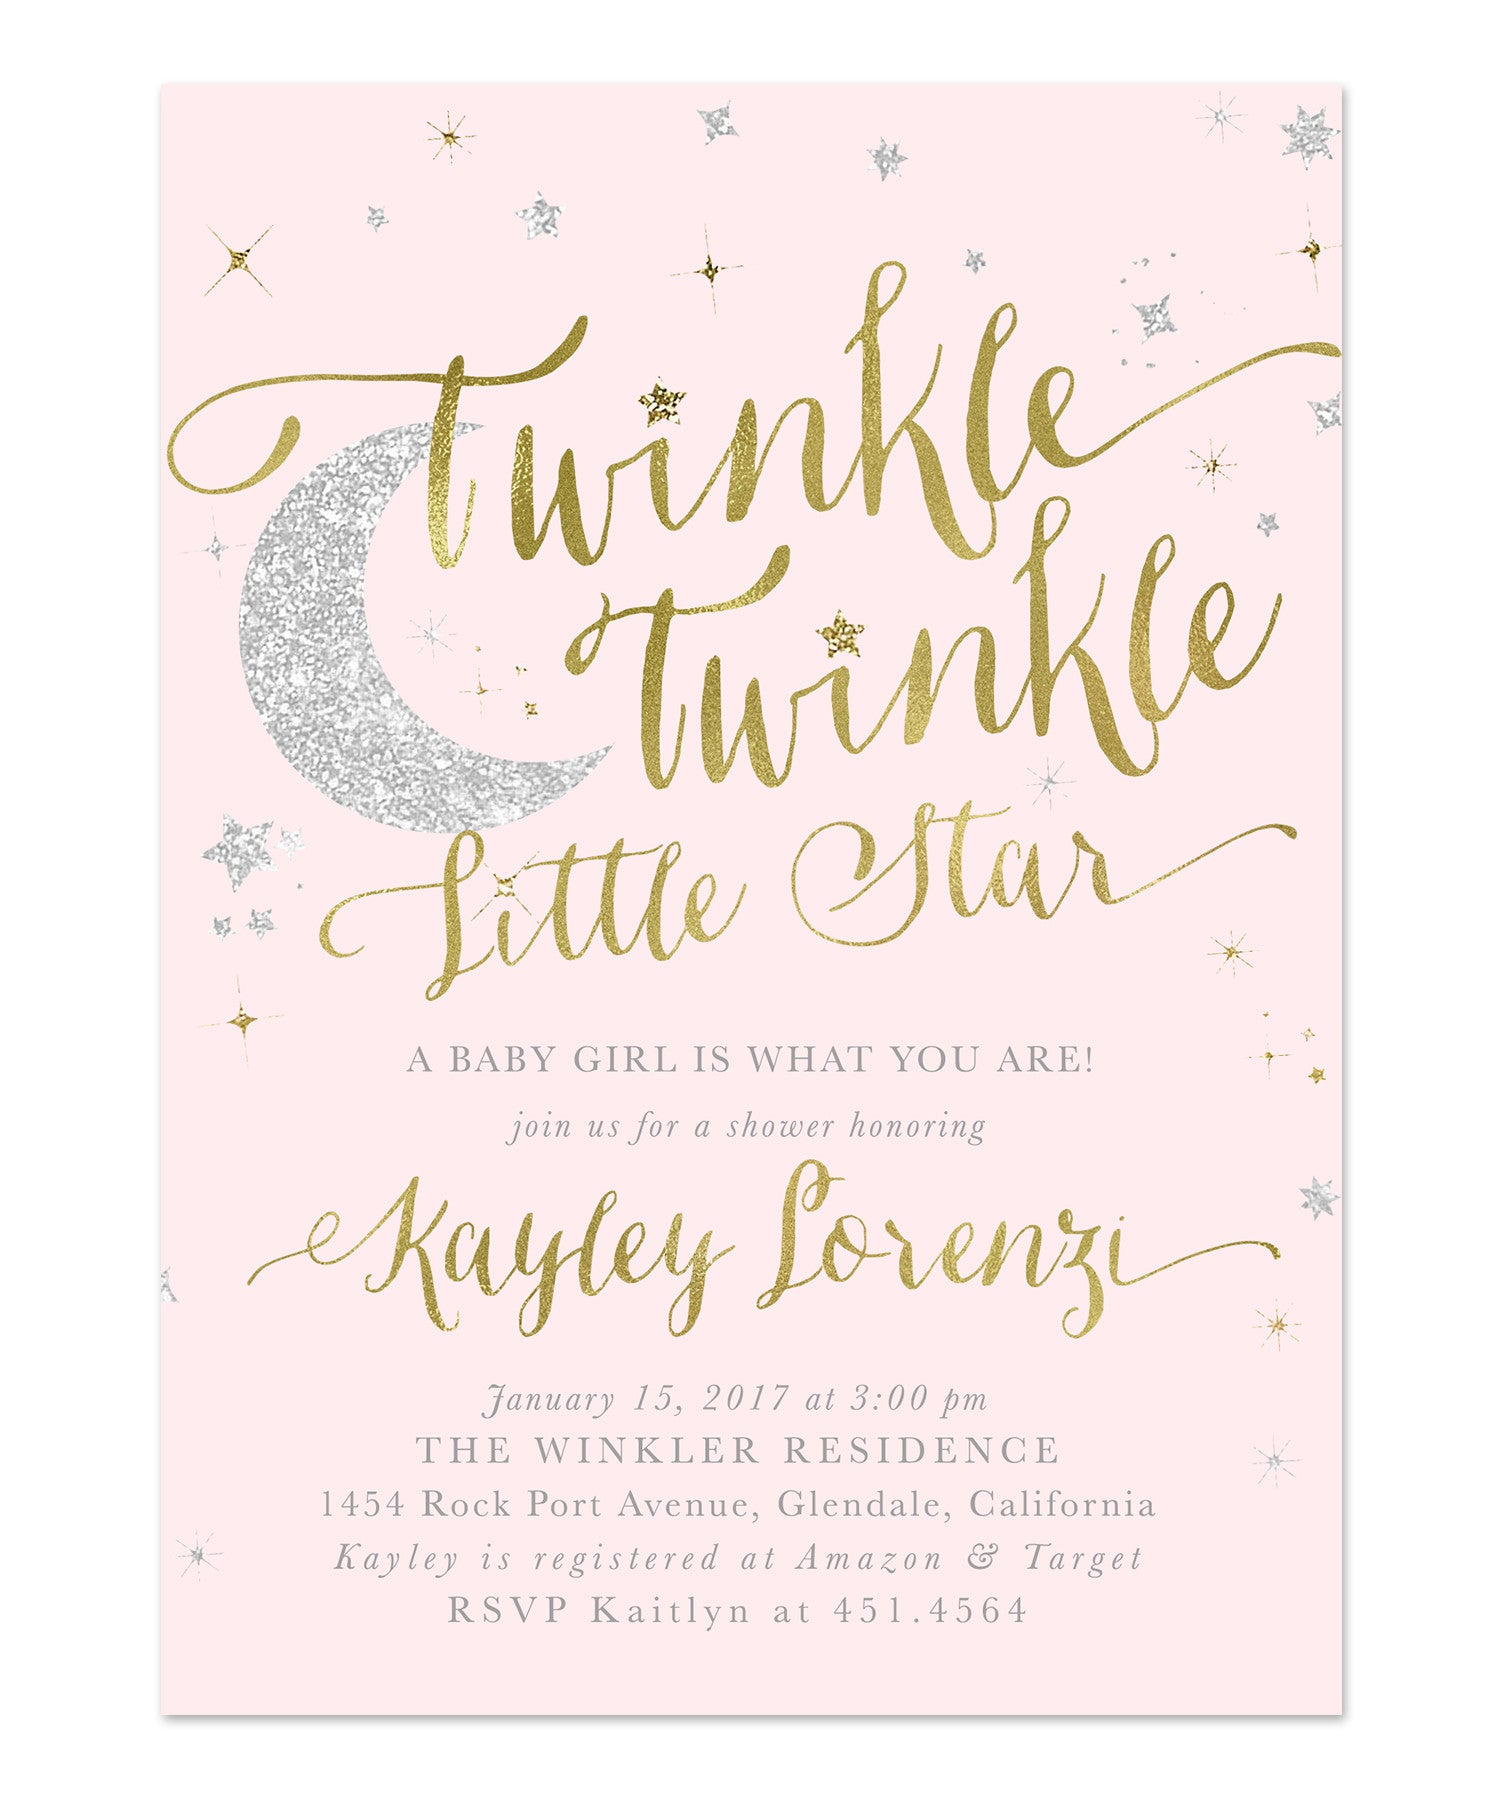 Twinkle twinkle little star girl baby shower or sprinkle invitation twinkle twinkle little star girl baby shower invitation pink filmwisefo